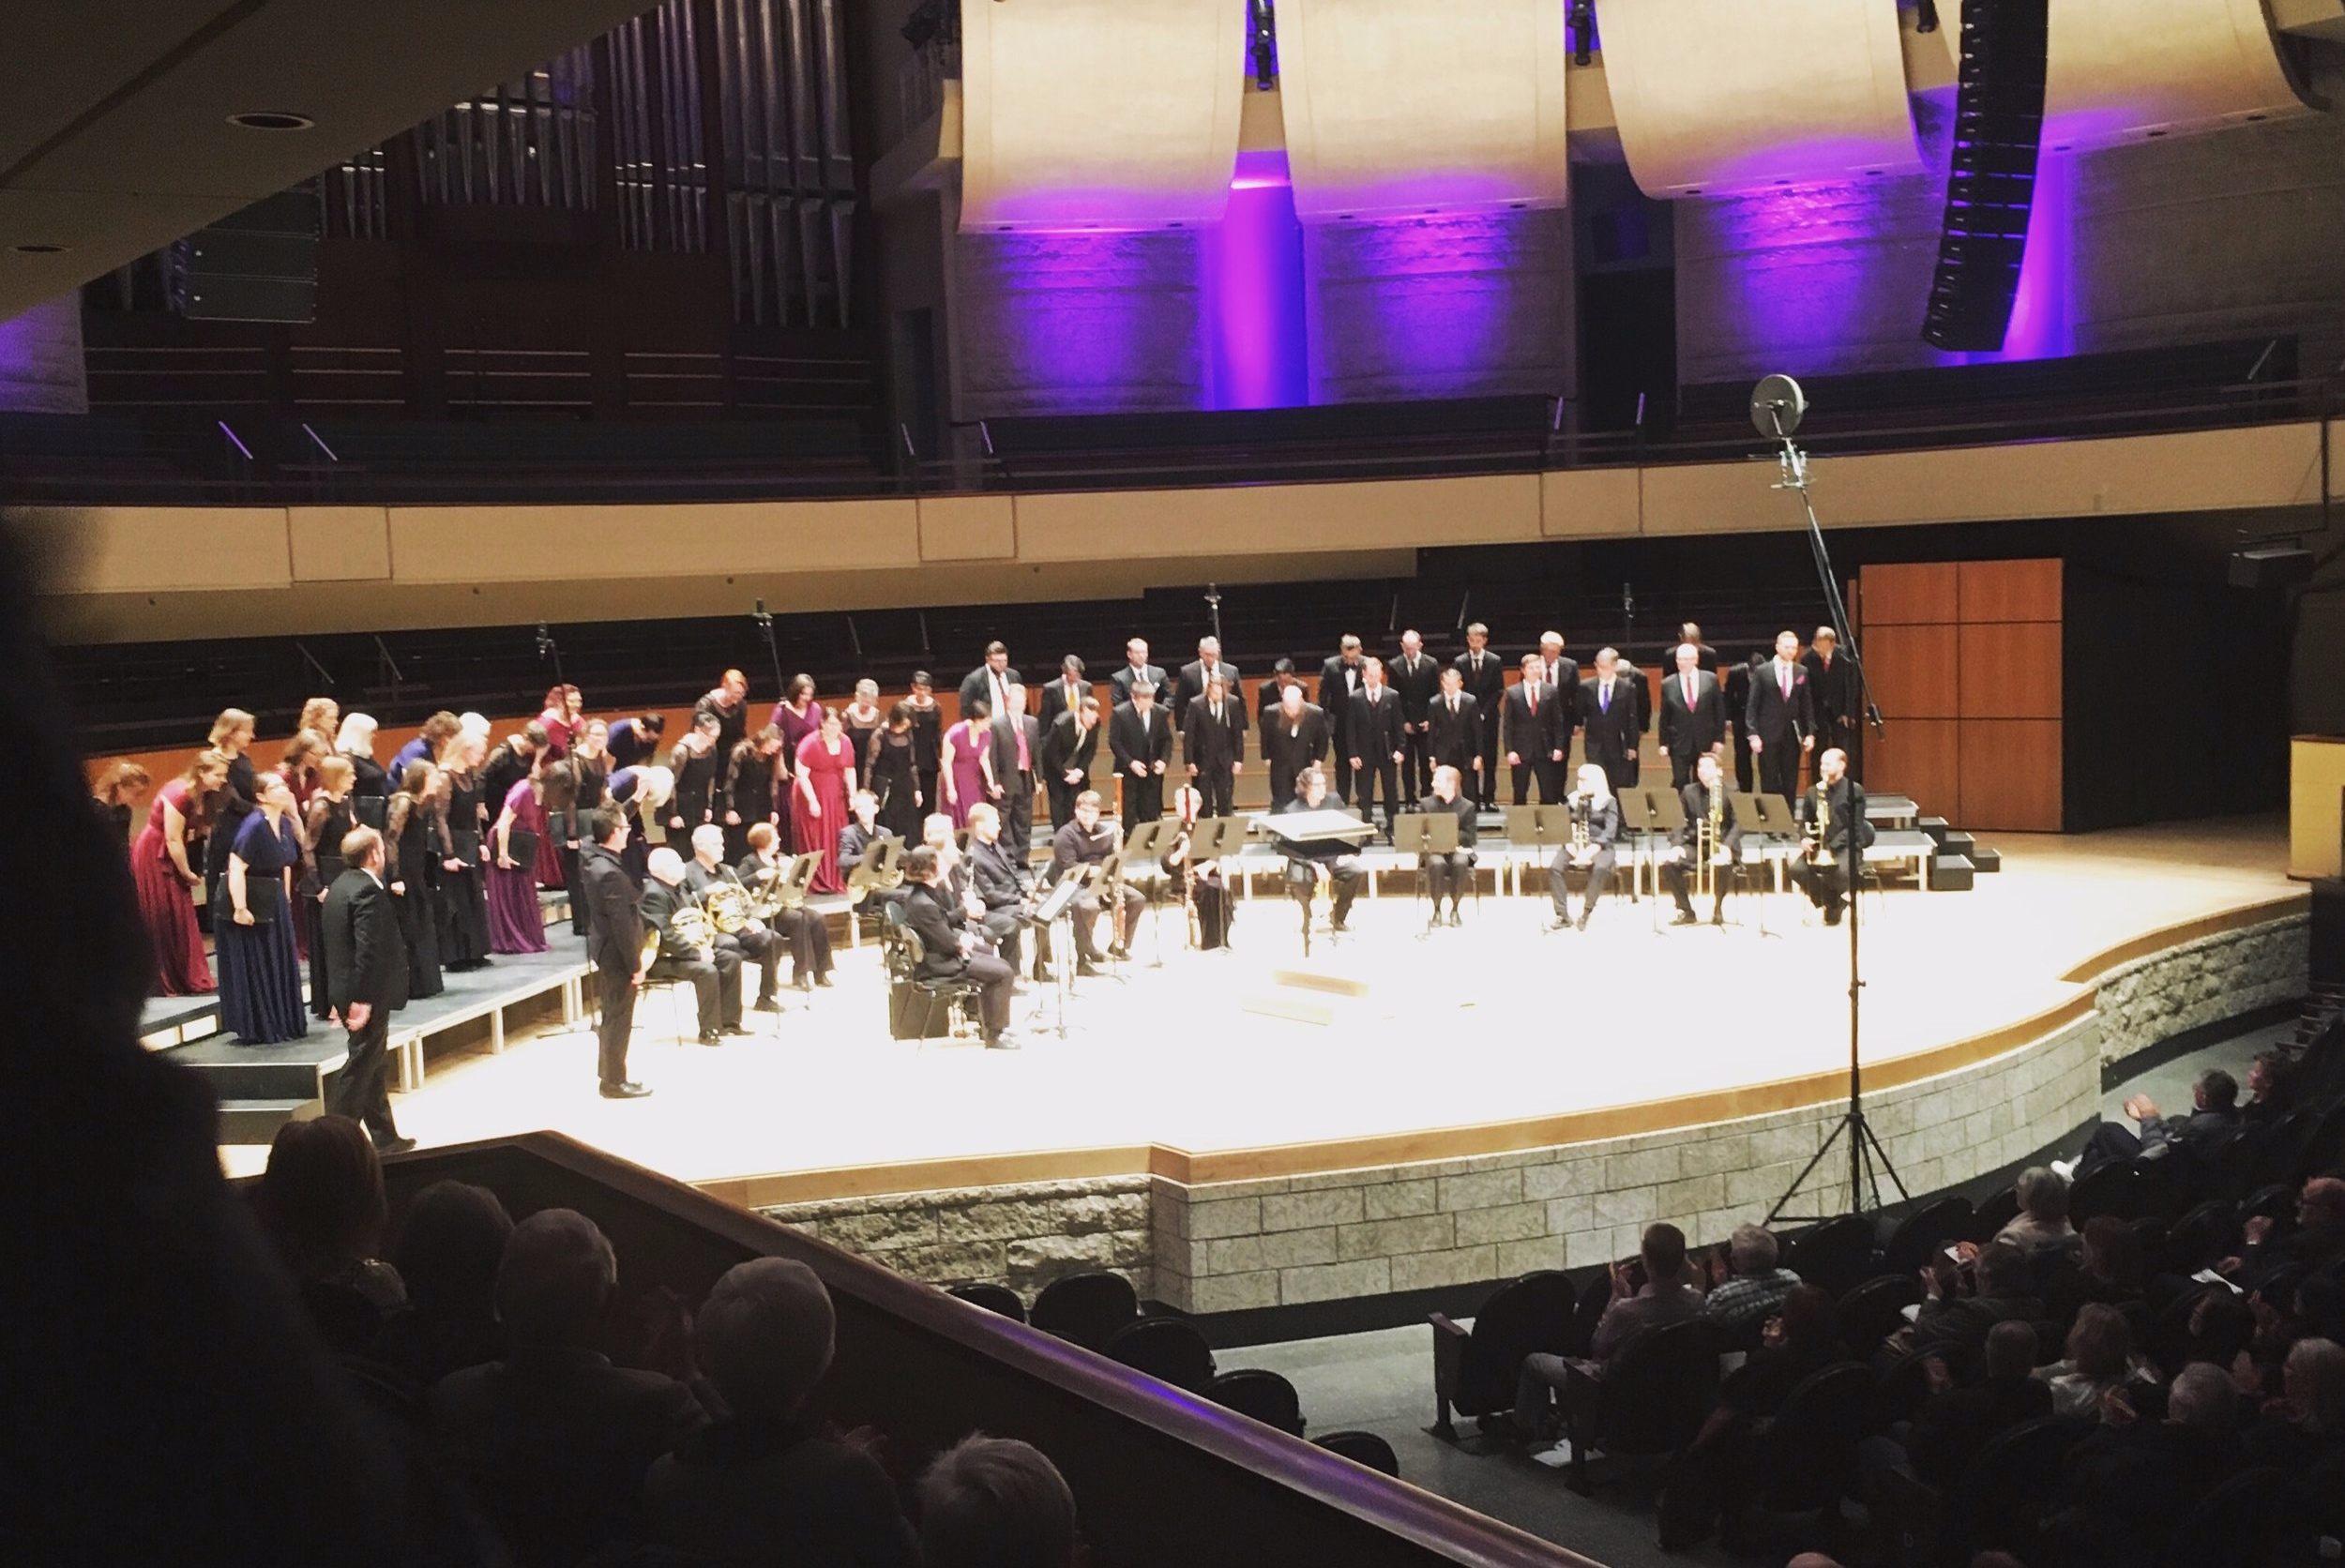 Pro Coro Canada on stage after their successful Good Friday Concert in the Winspear, Edmonton. (Photo: private)